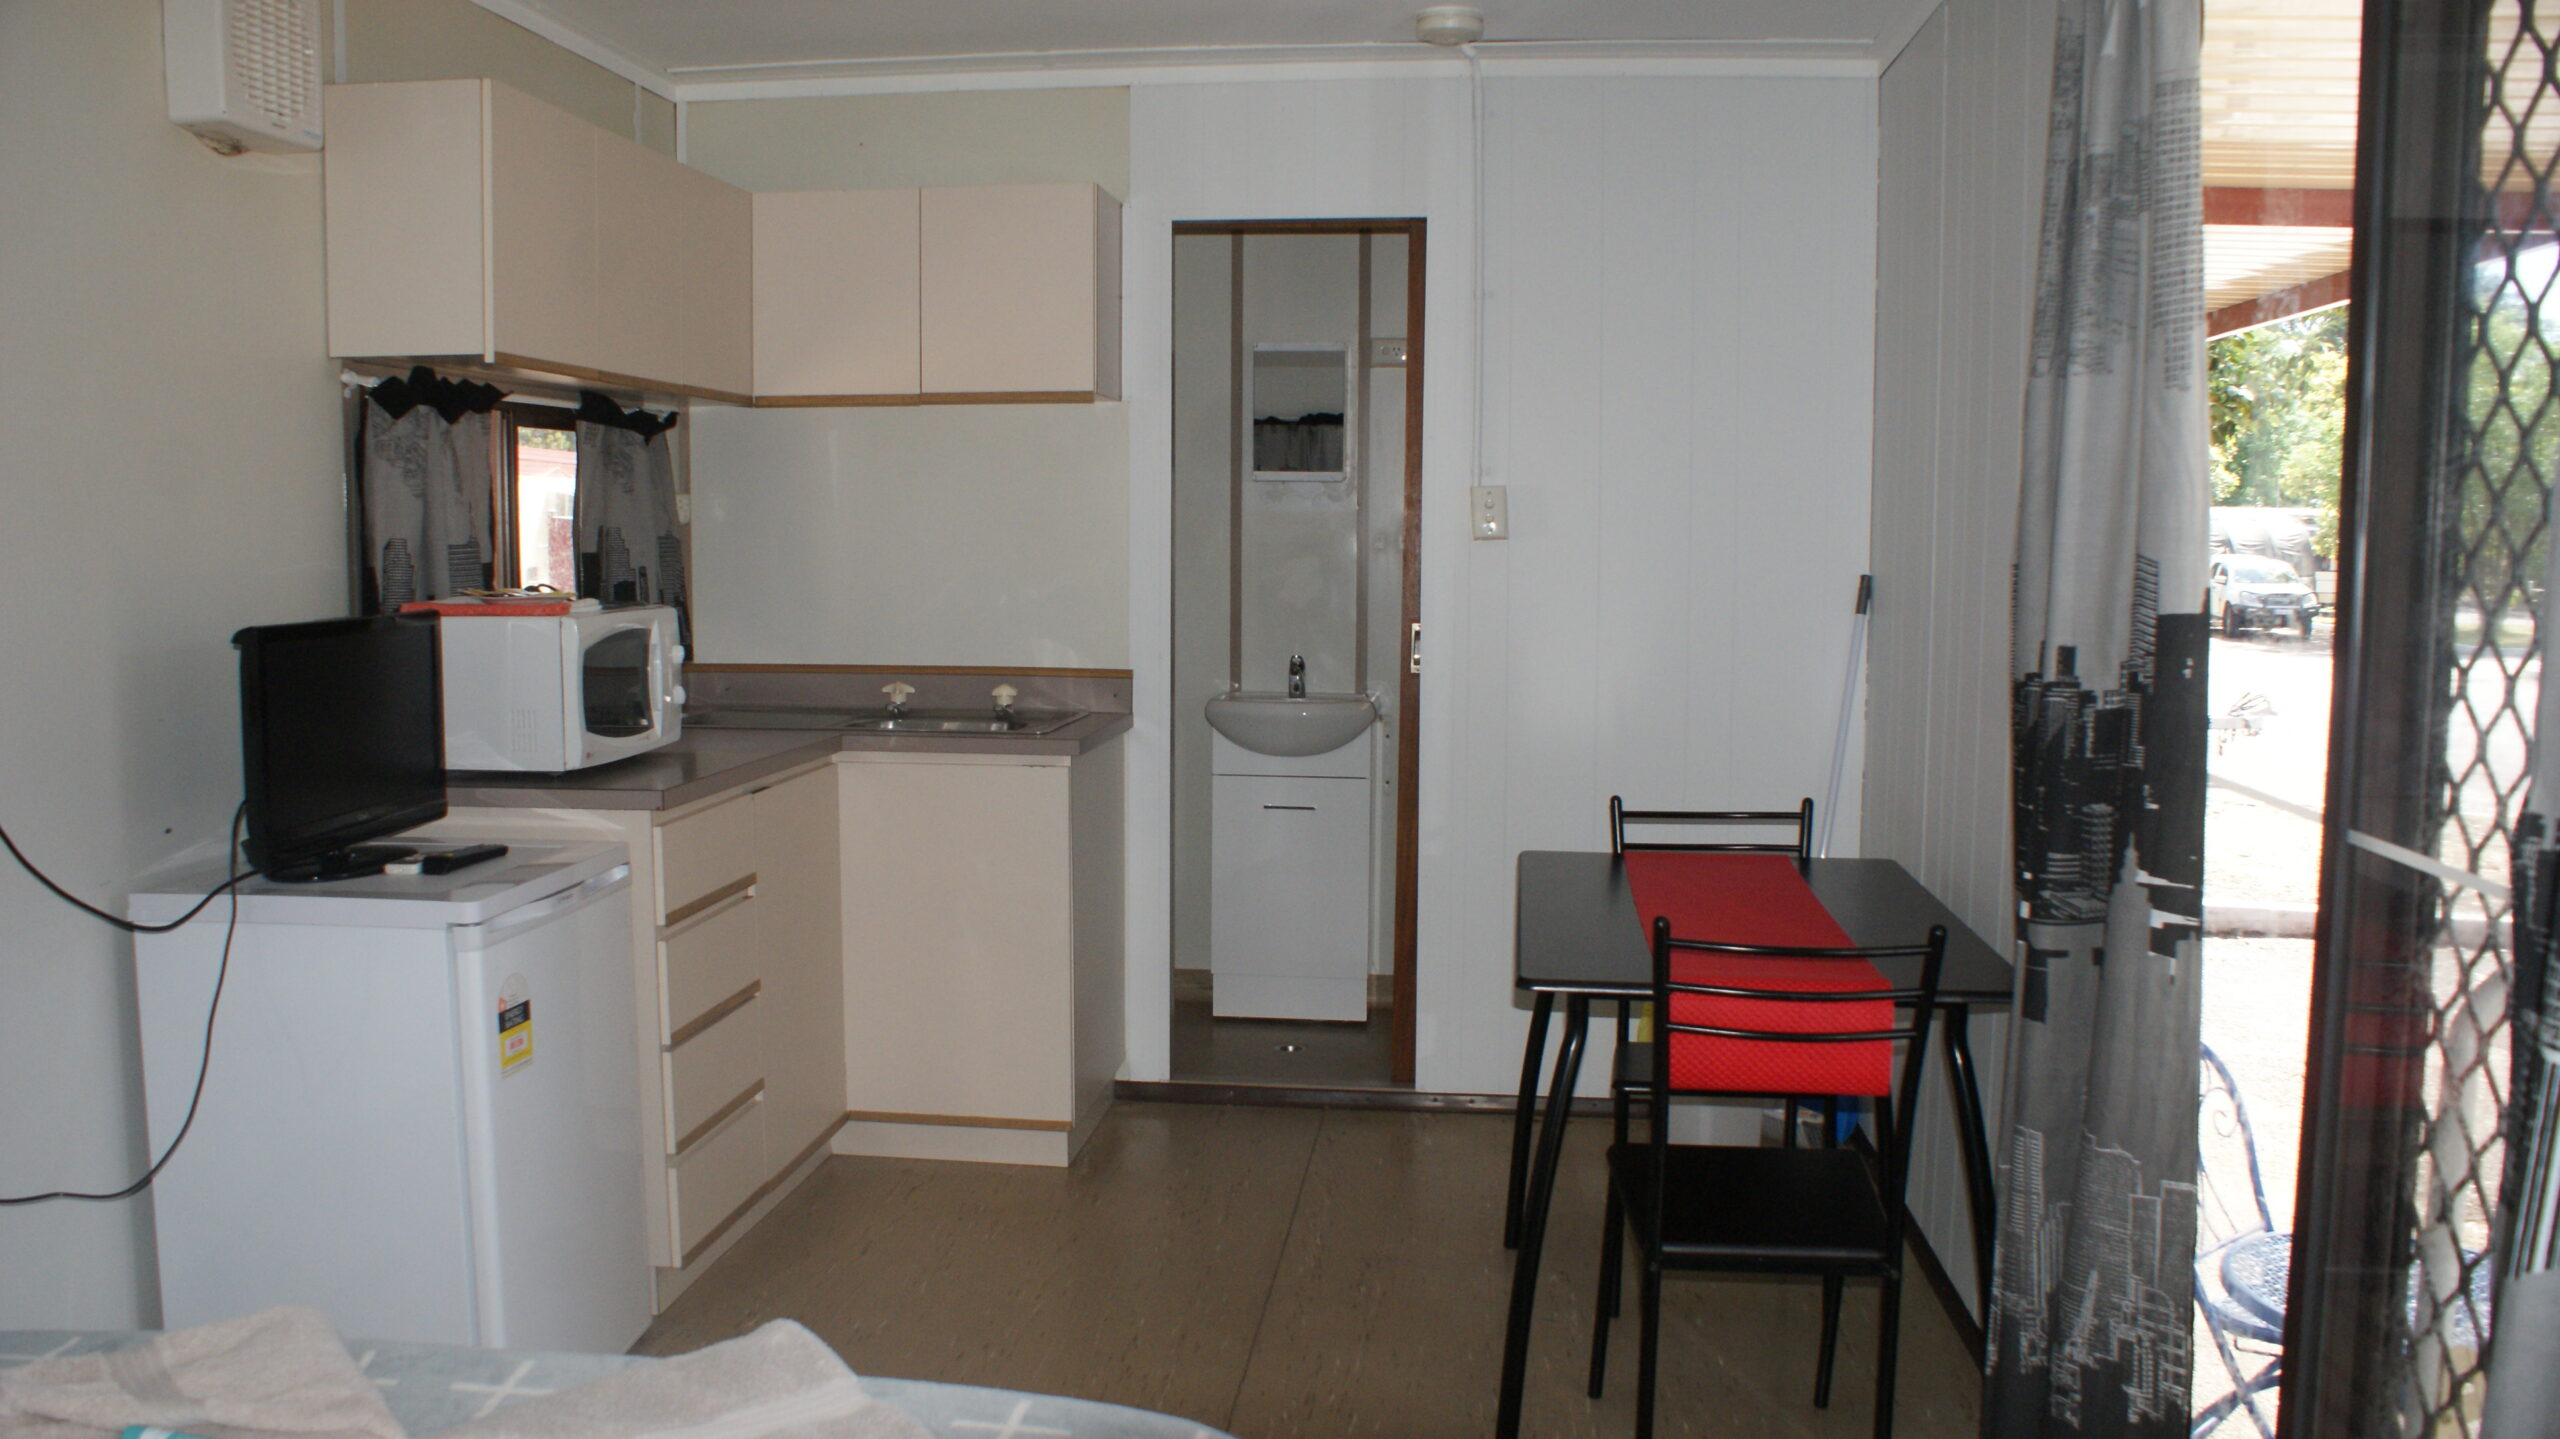 Cabins and caravan accommodation